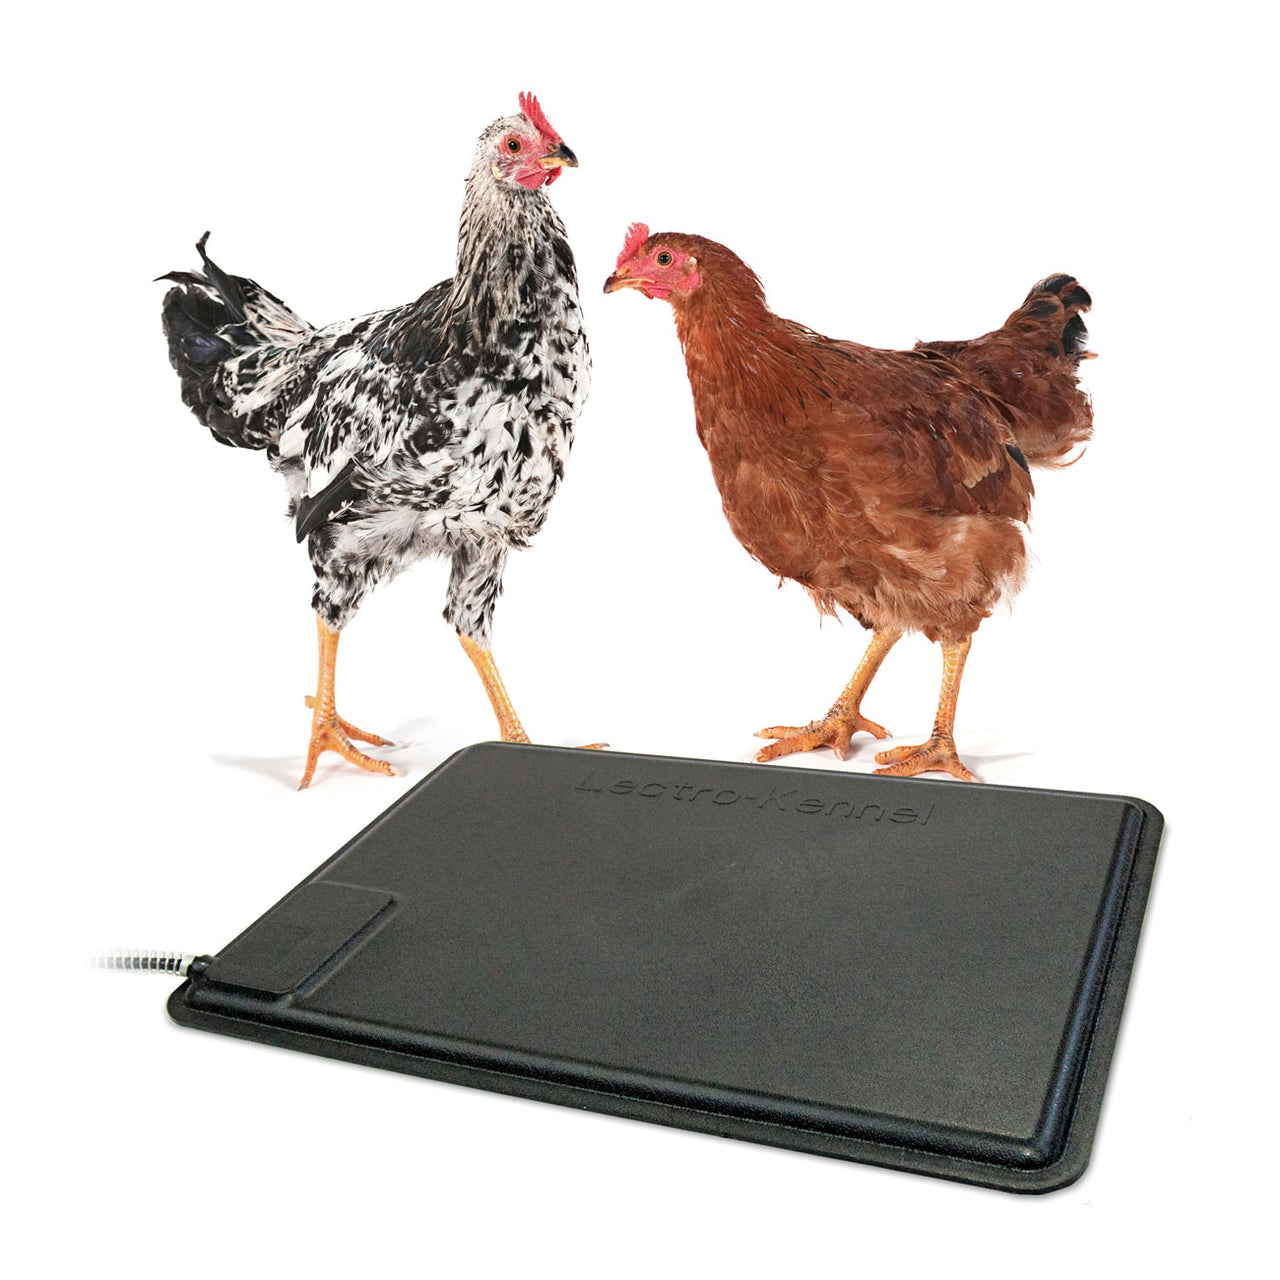 K&h Pet Products Thermo-Chicken Heated Pad - K&h Pet Products - Canada